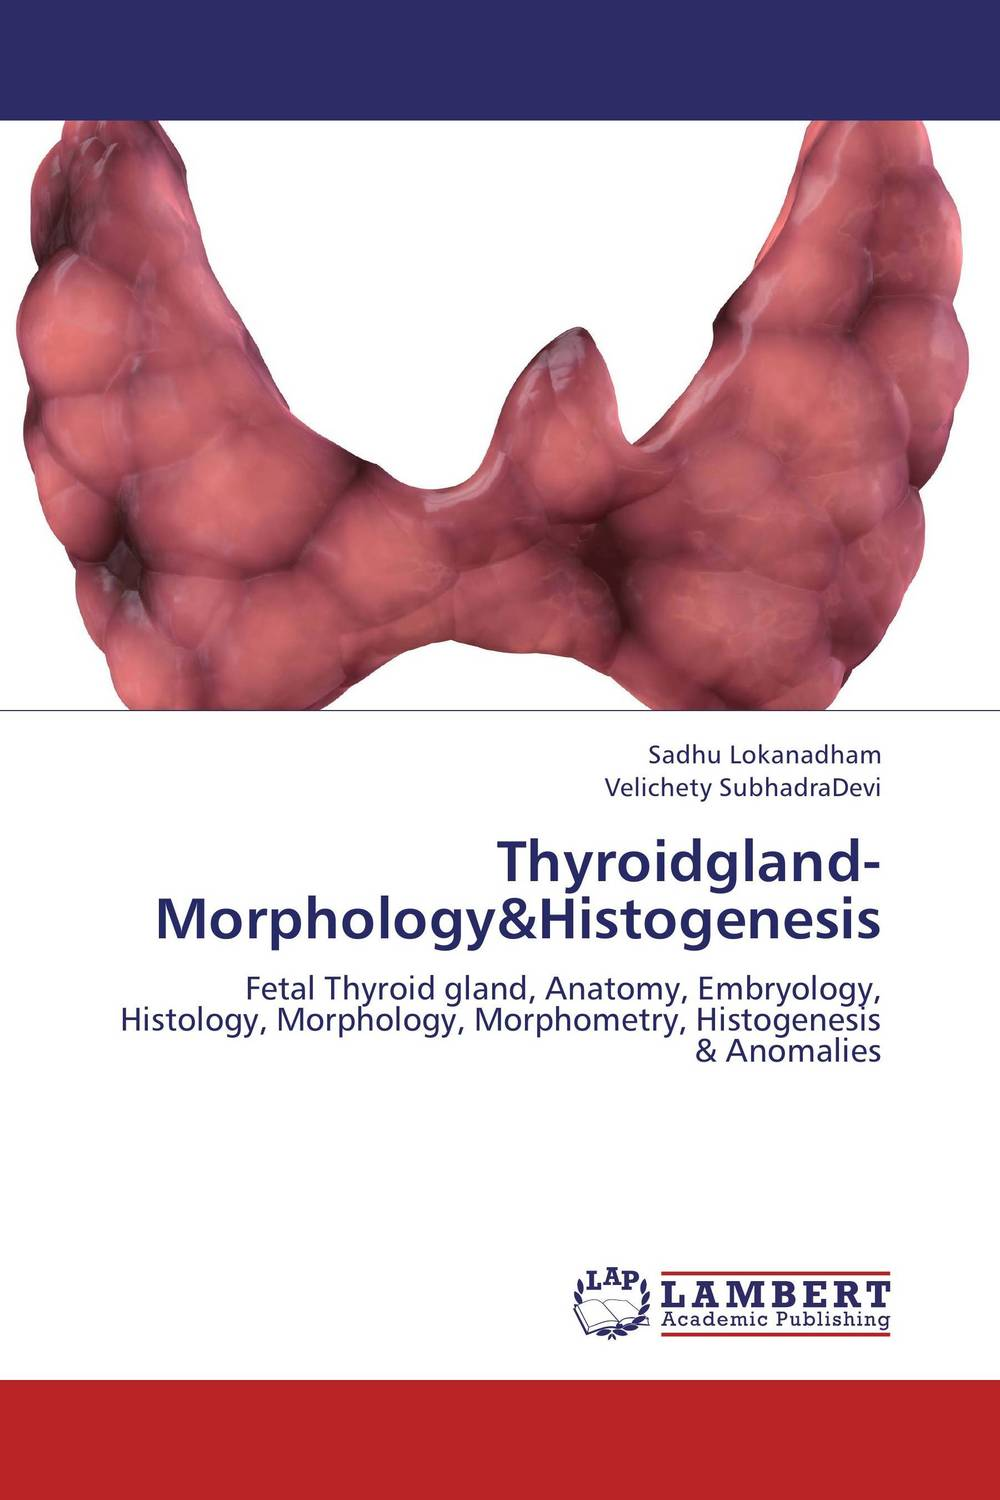 Thyroidgland-Morphology&Histogenesis benign enlargement of prostate gland bep in ayurveda